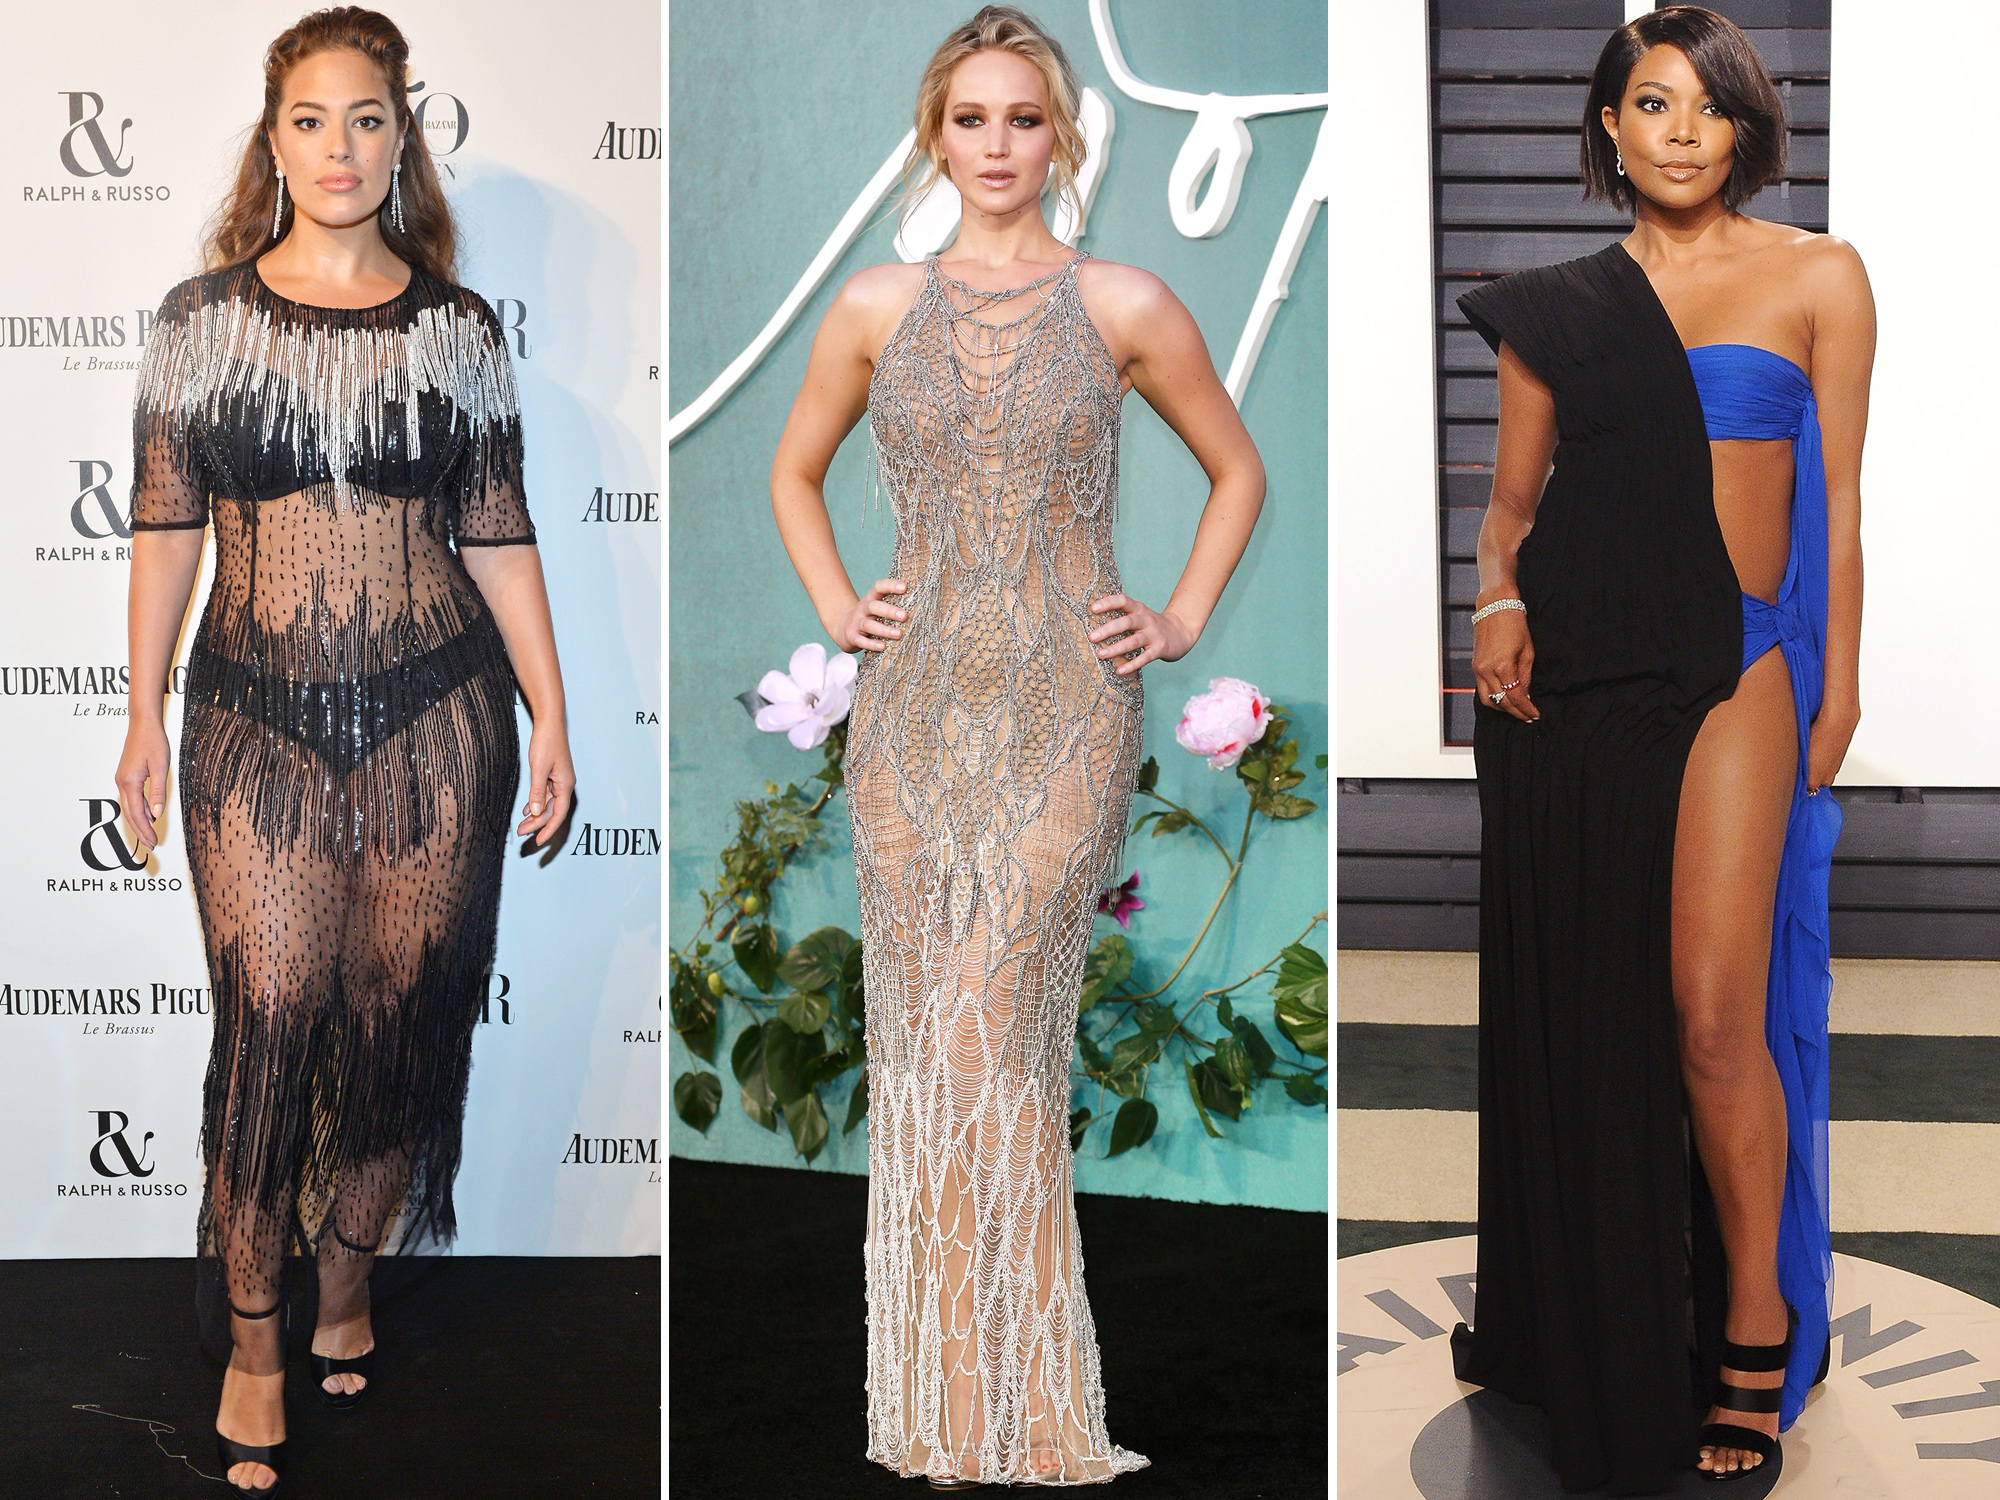 The Most Naked Fashion Moments of 2017